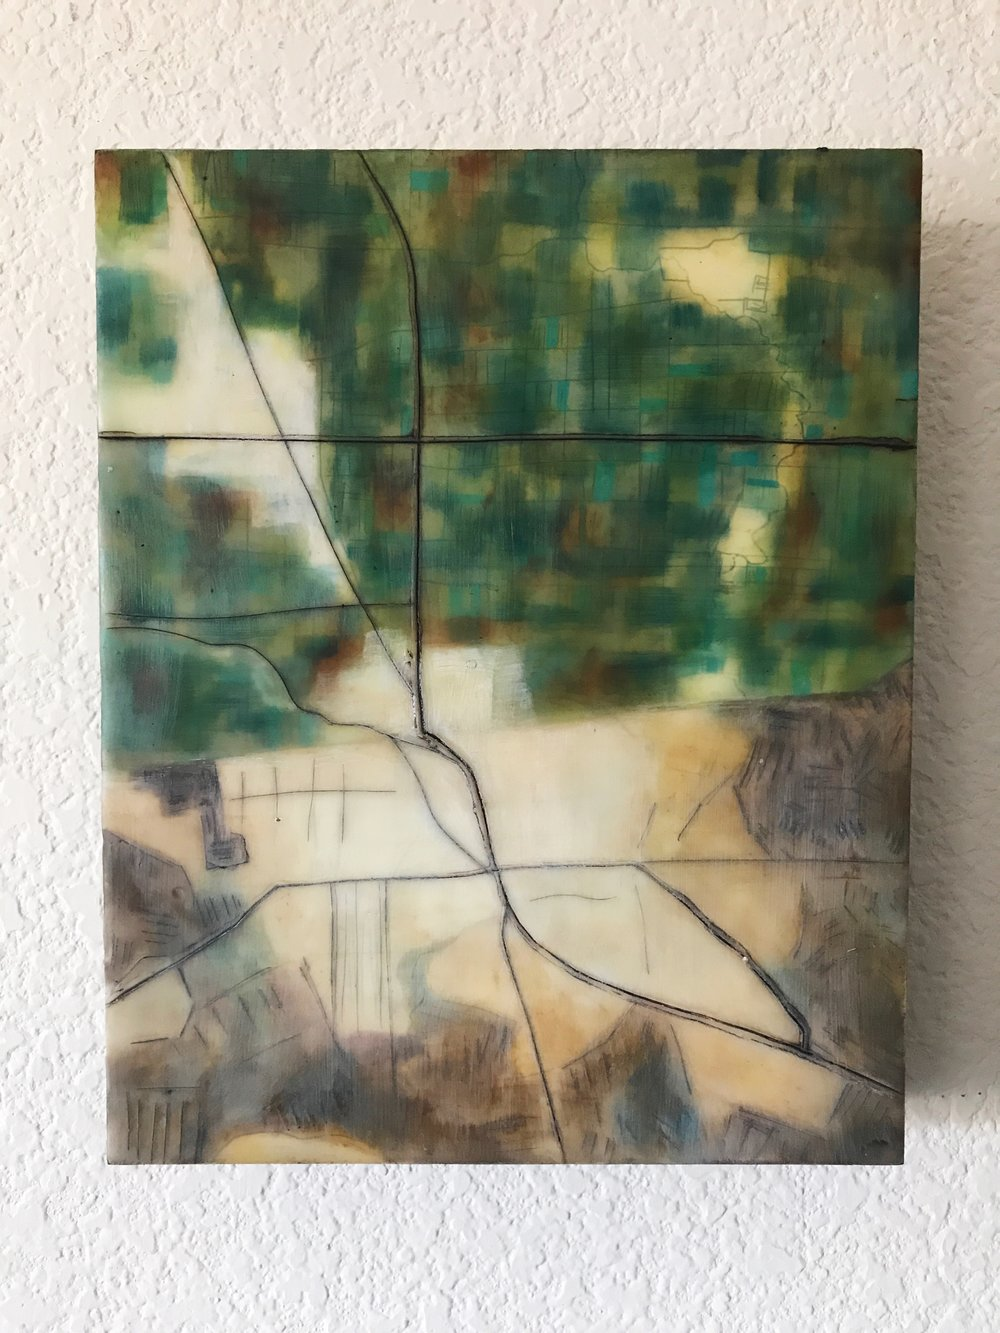 "Mexicali/Calexico, 8x10"", encaustic and oil on Claybord"